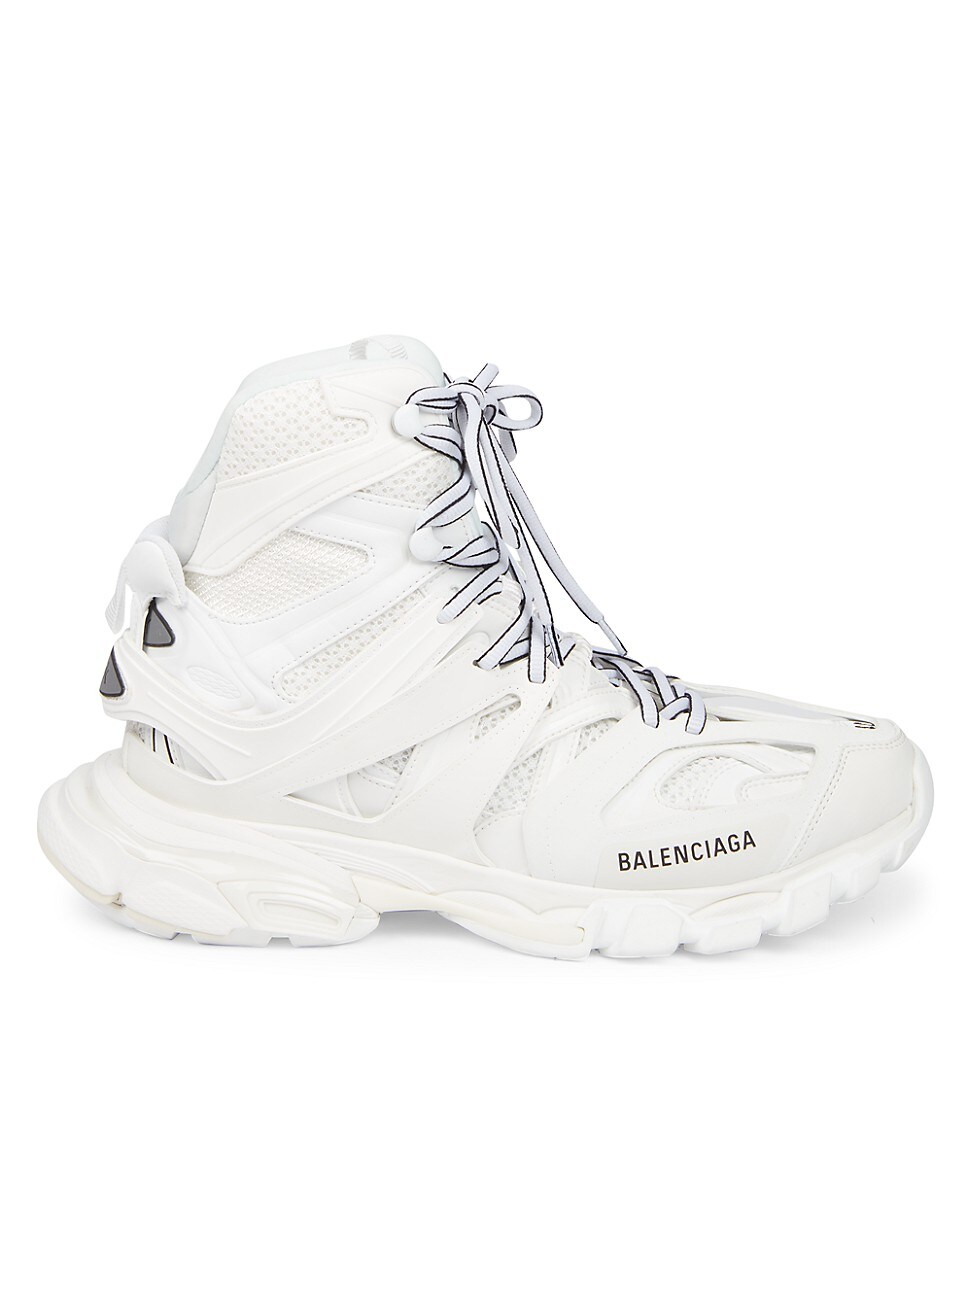 Balenciaga MEN'S TRACK HIKE SNEAKERS